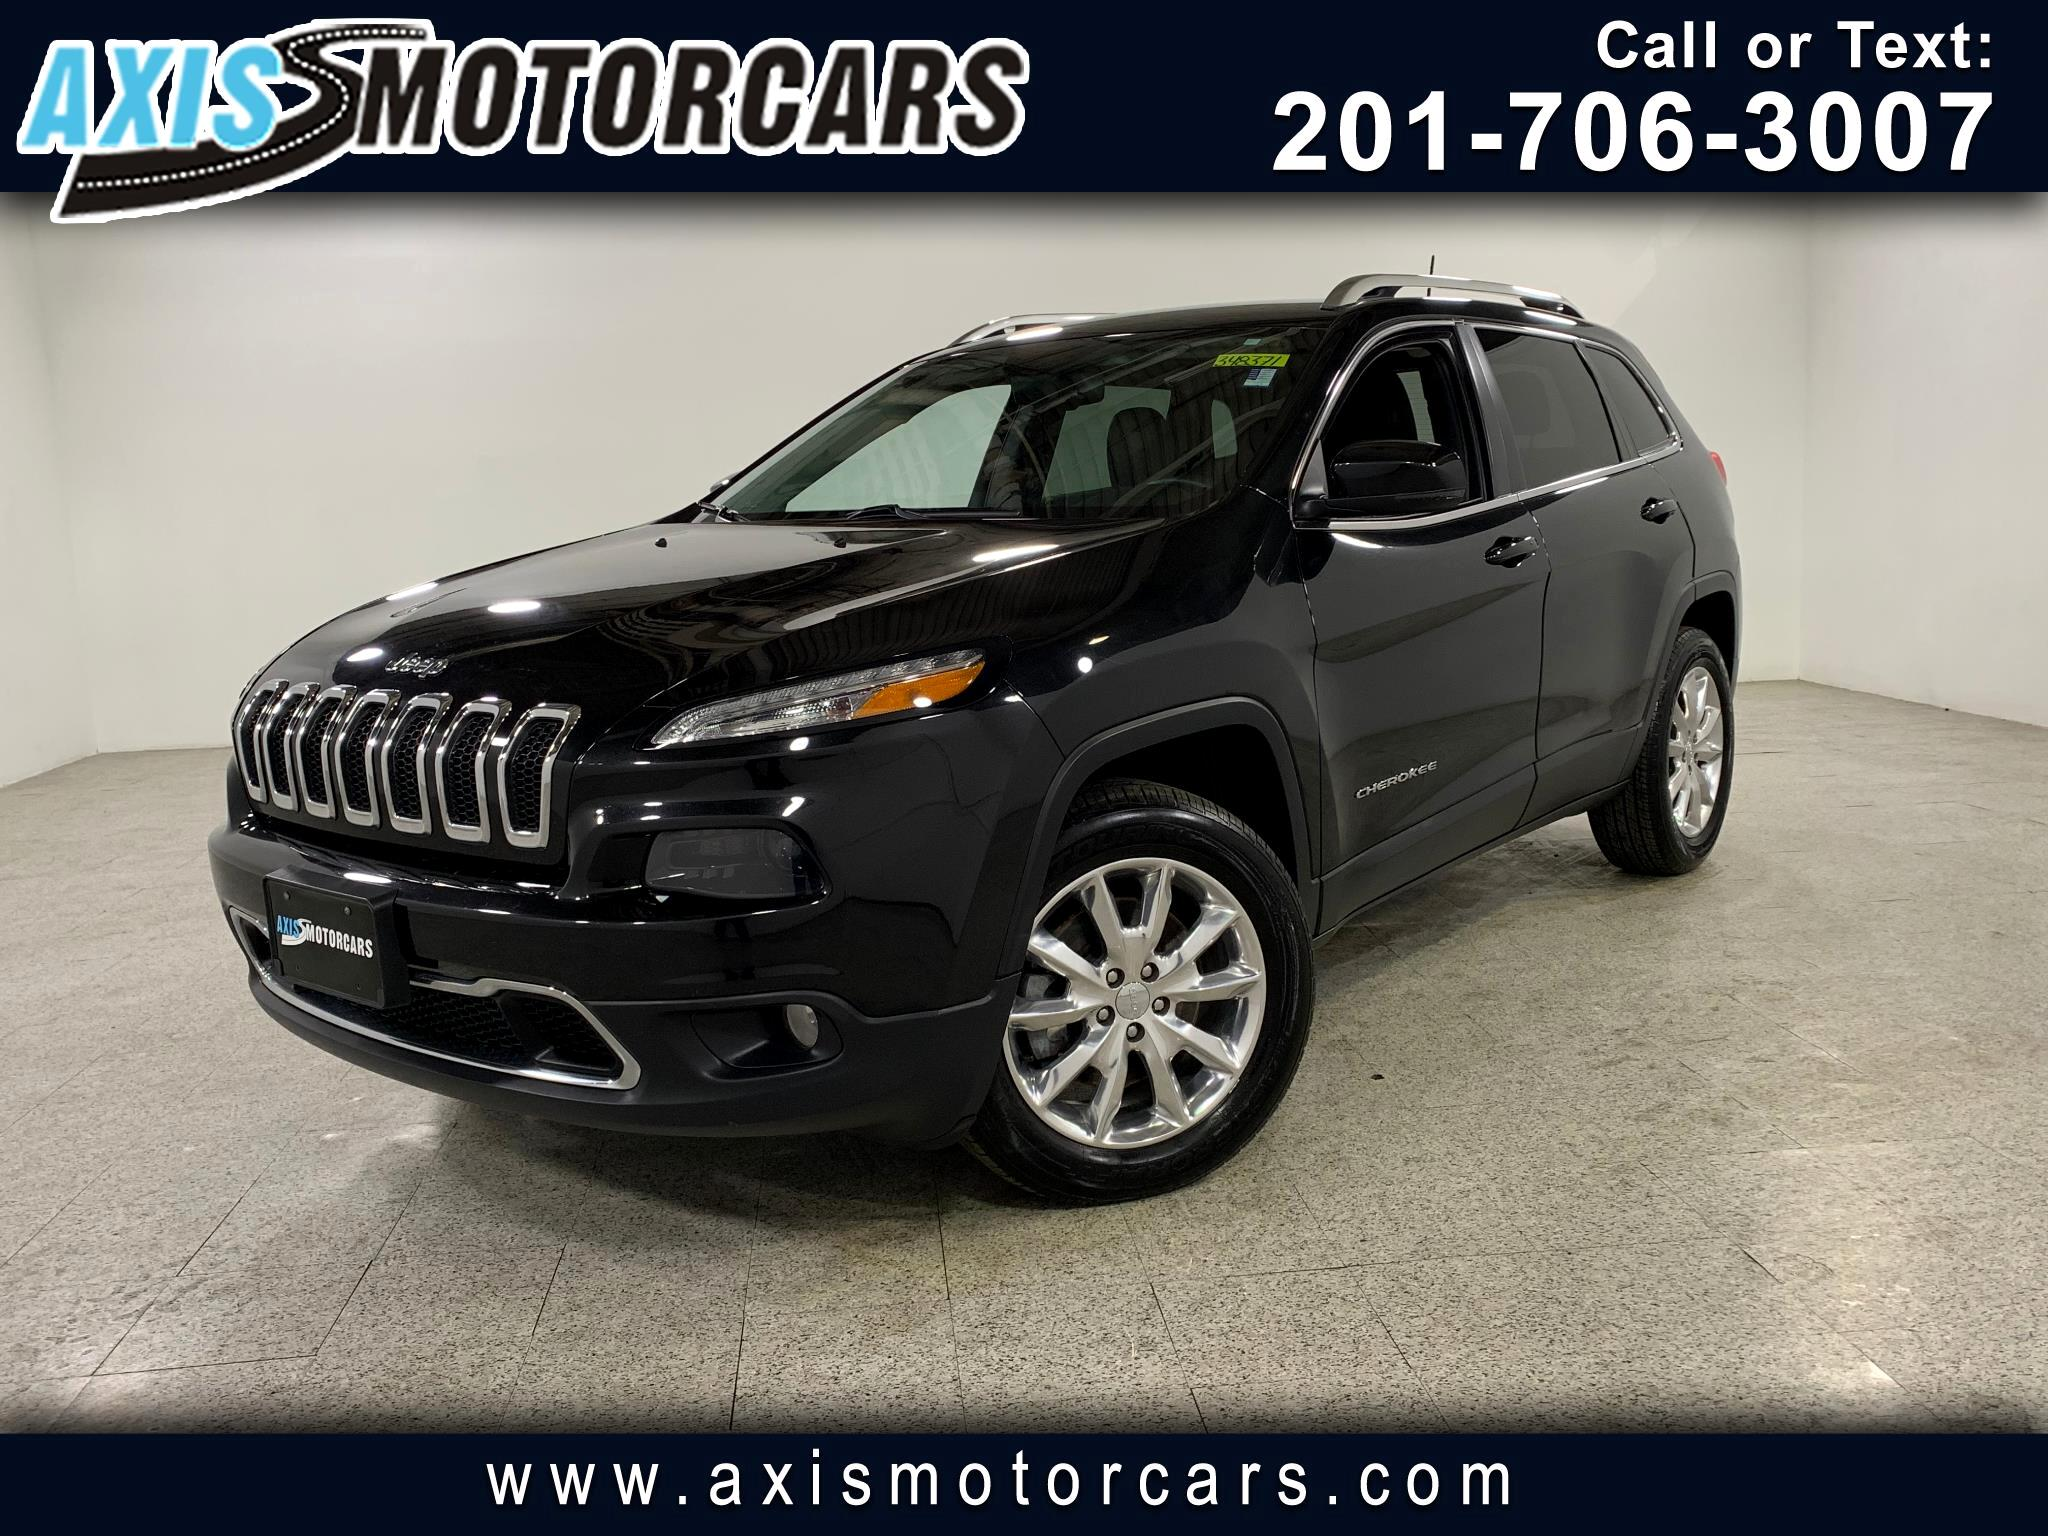 2016 Jeep Cherokee Limted w/Bakup Camera Leather